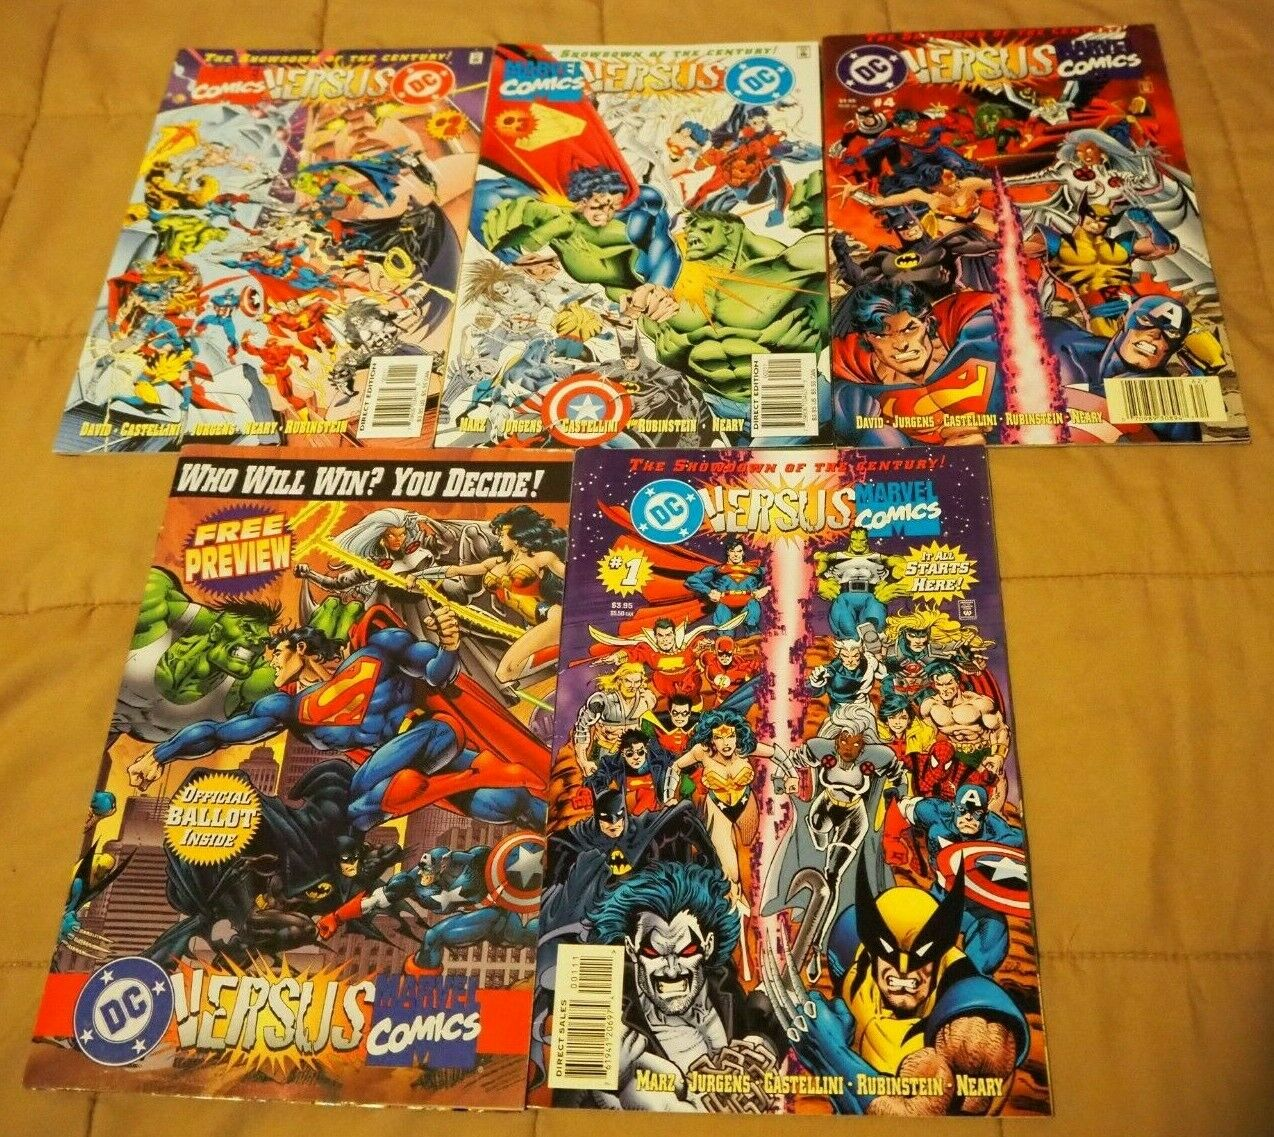 Marvel Versus DC 1-4 complete full run set lot DC vs Marvel vs DC Versus Marvel